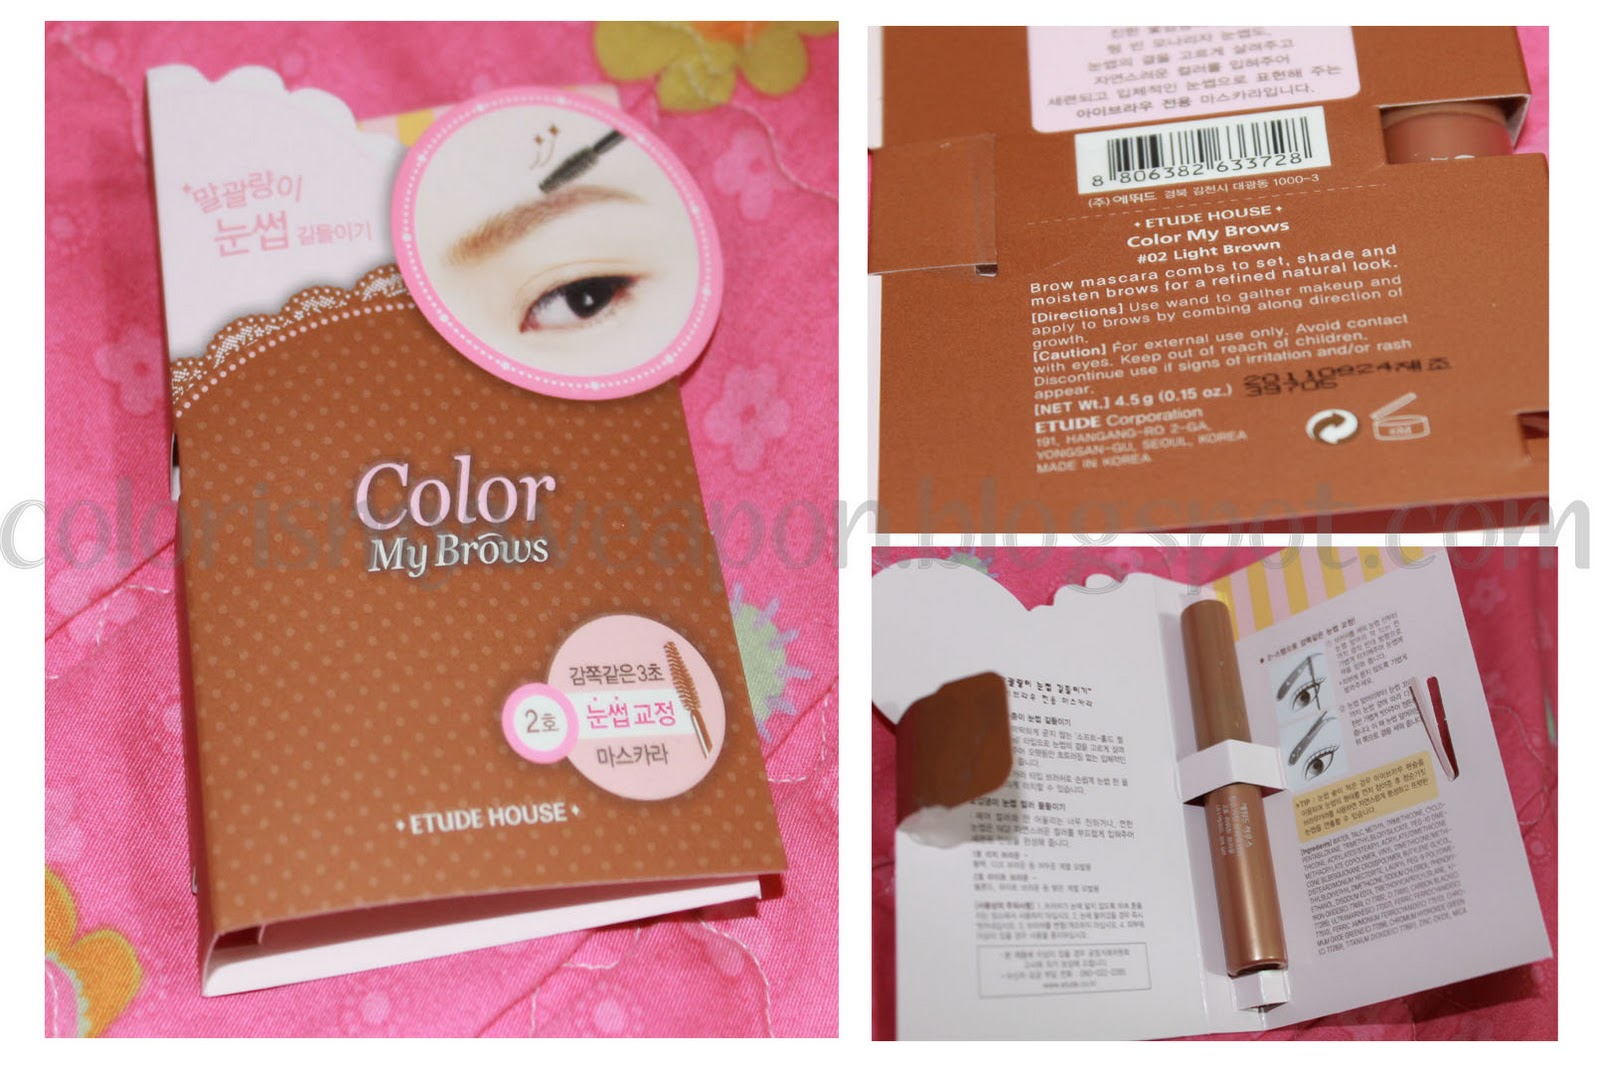 Colorismyweapon By Noe Mae Review Etude House Color My Brows No 2 Brow Light Brown